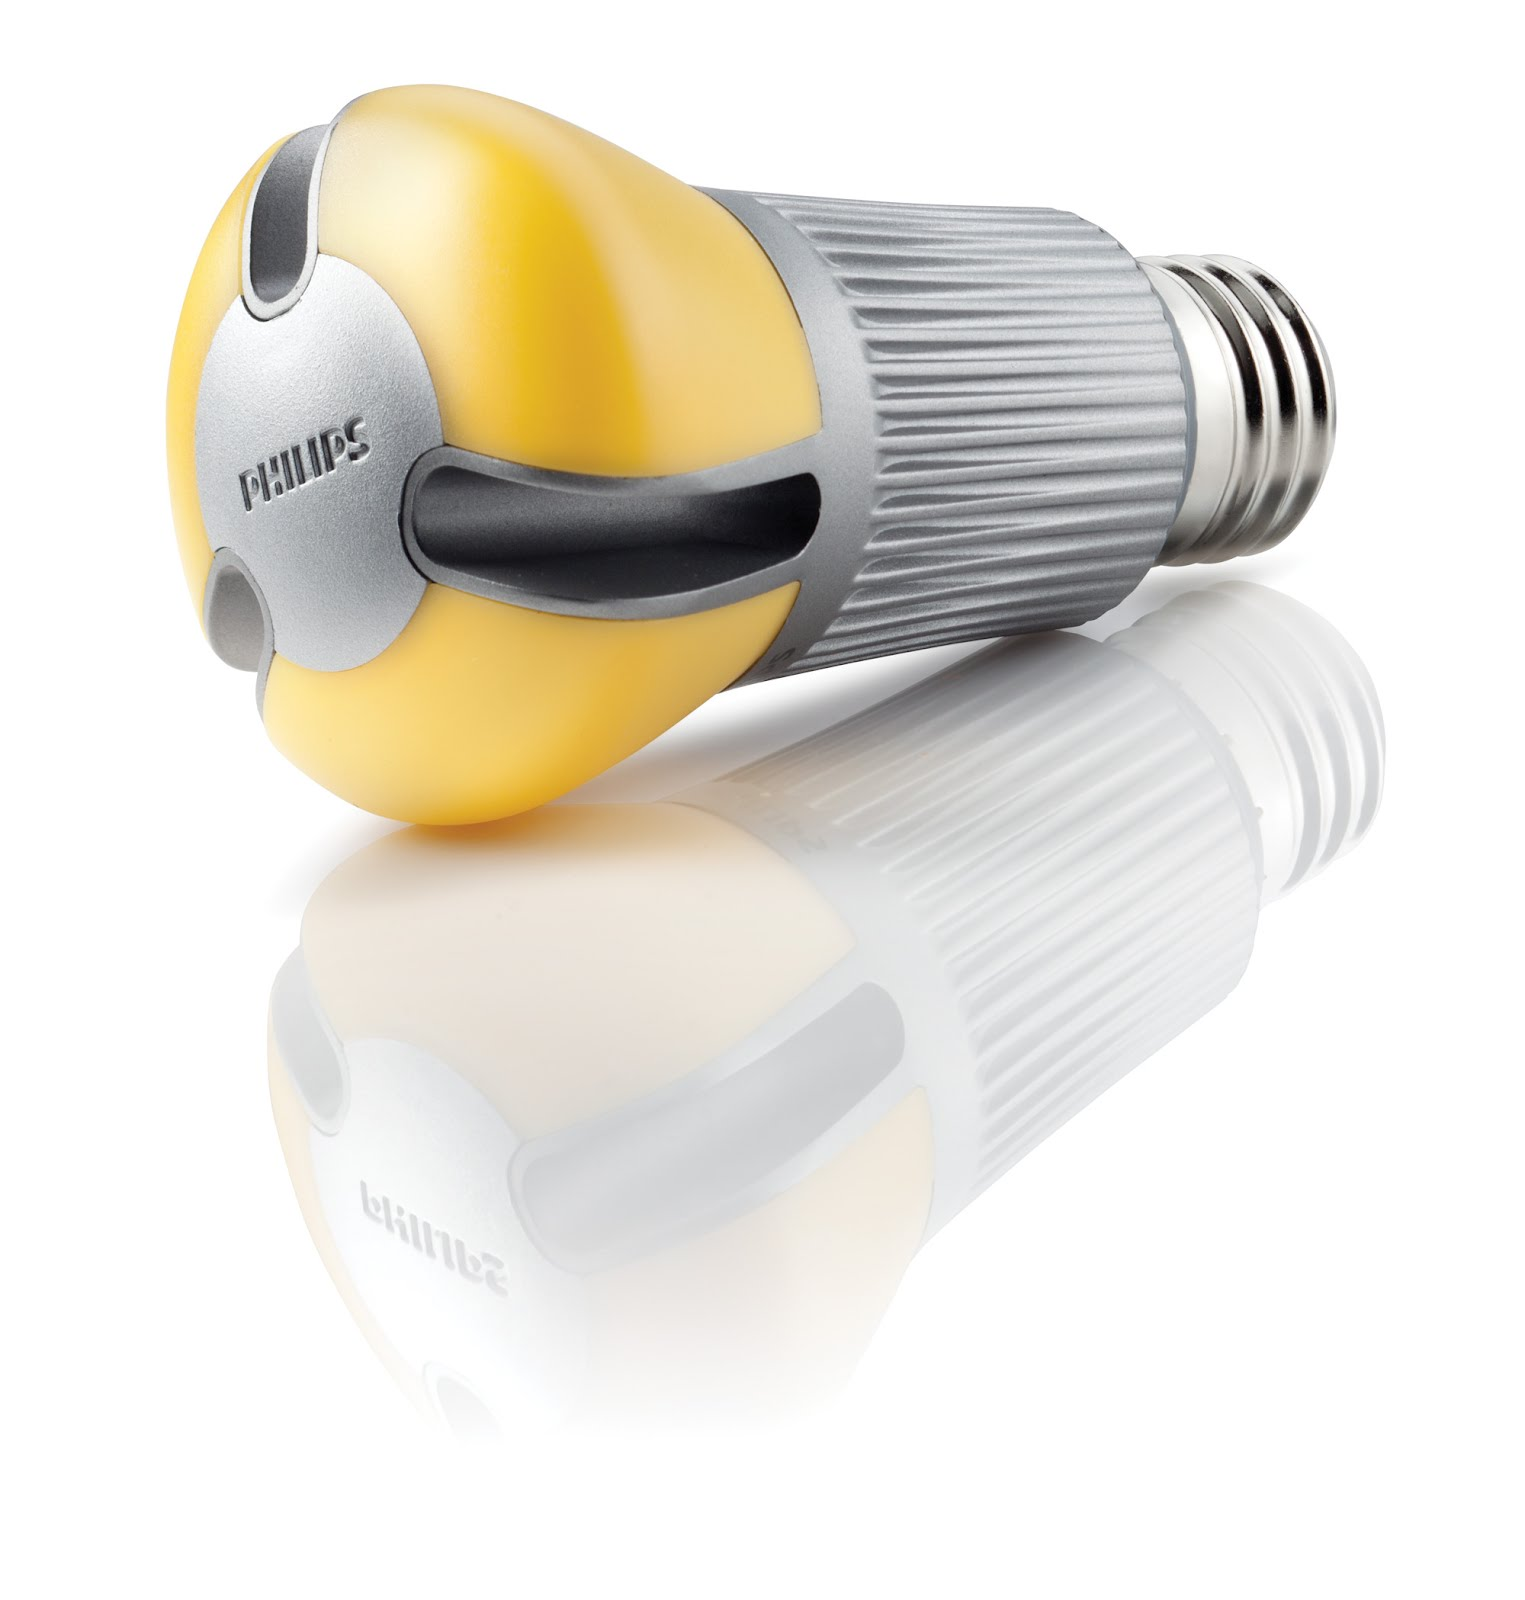 spot opportunities philips endura led a shape lamp